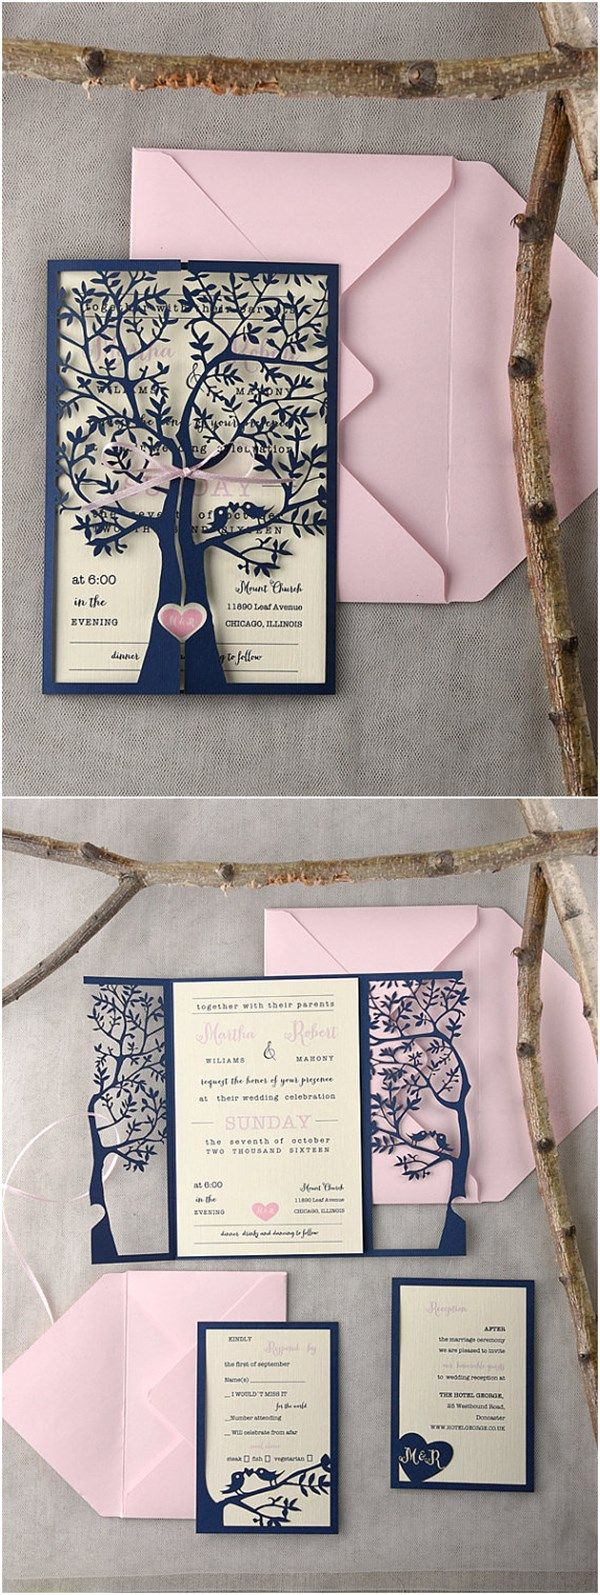 This wedding invitation is stunning 15 Our